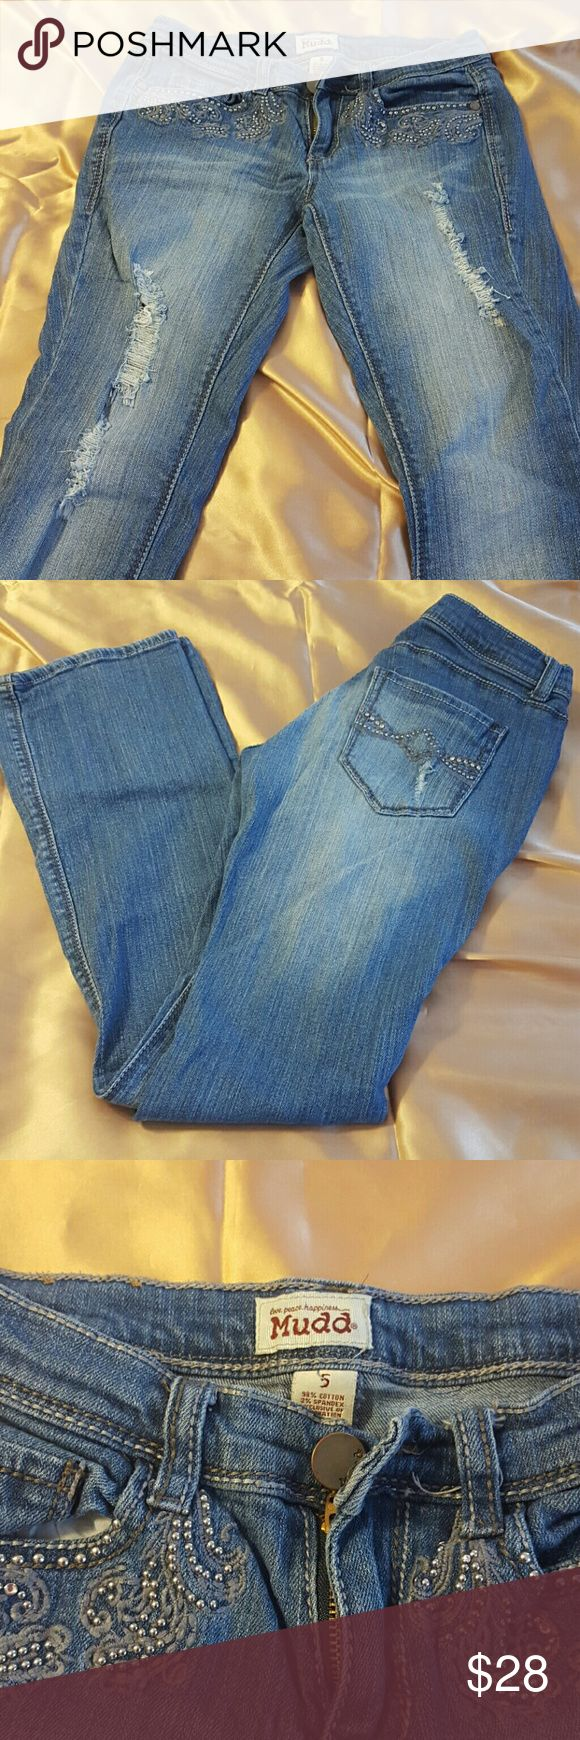 Mudd distressed with sequin  size 5 Jeans Very nice embroidered sequins distressed jeans. great for skinny women very stylish if you like distress Jeans. It's skinny legs with wade to the bottom so you can wear it with boot. Mudd  Jeans Boot Cut